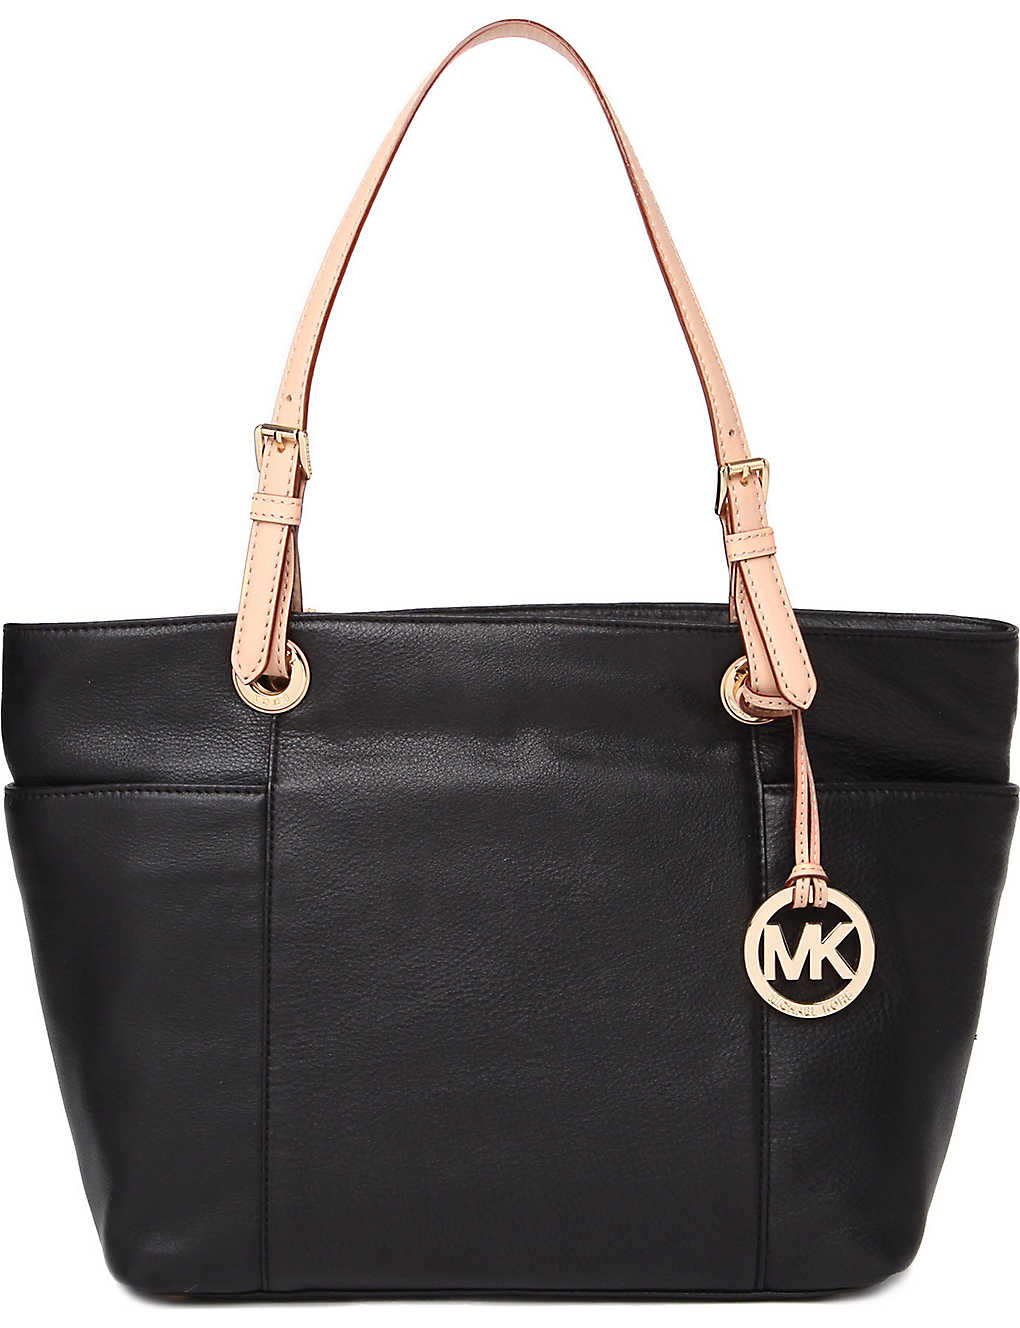 3254ce4fd3a8e8 MICHAEL MICHAEL KORS - Jet Set top zip tote | Selfridges.com